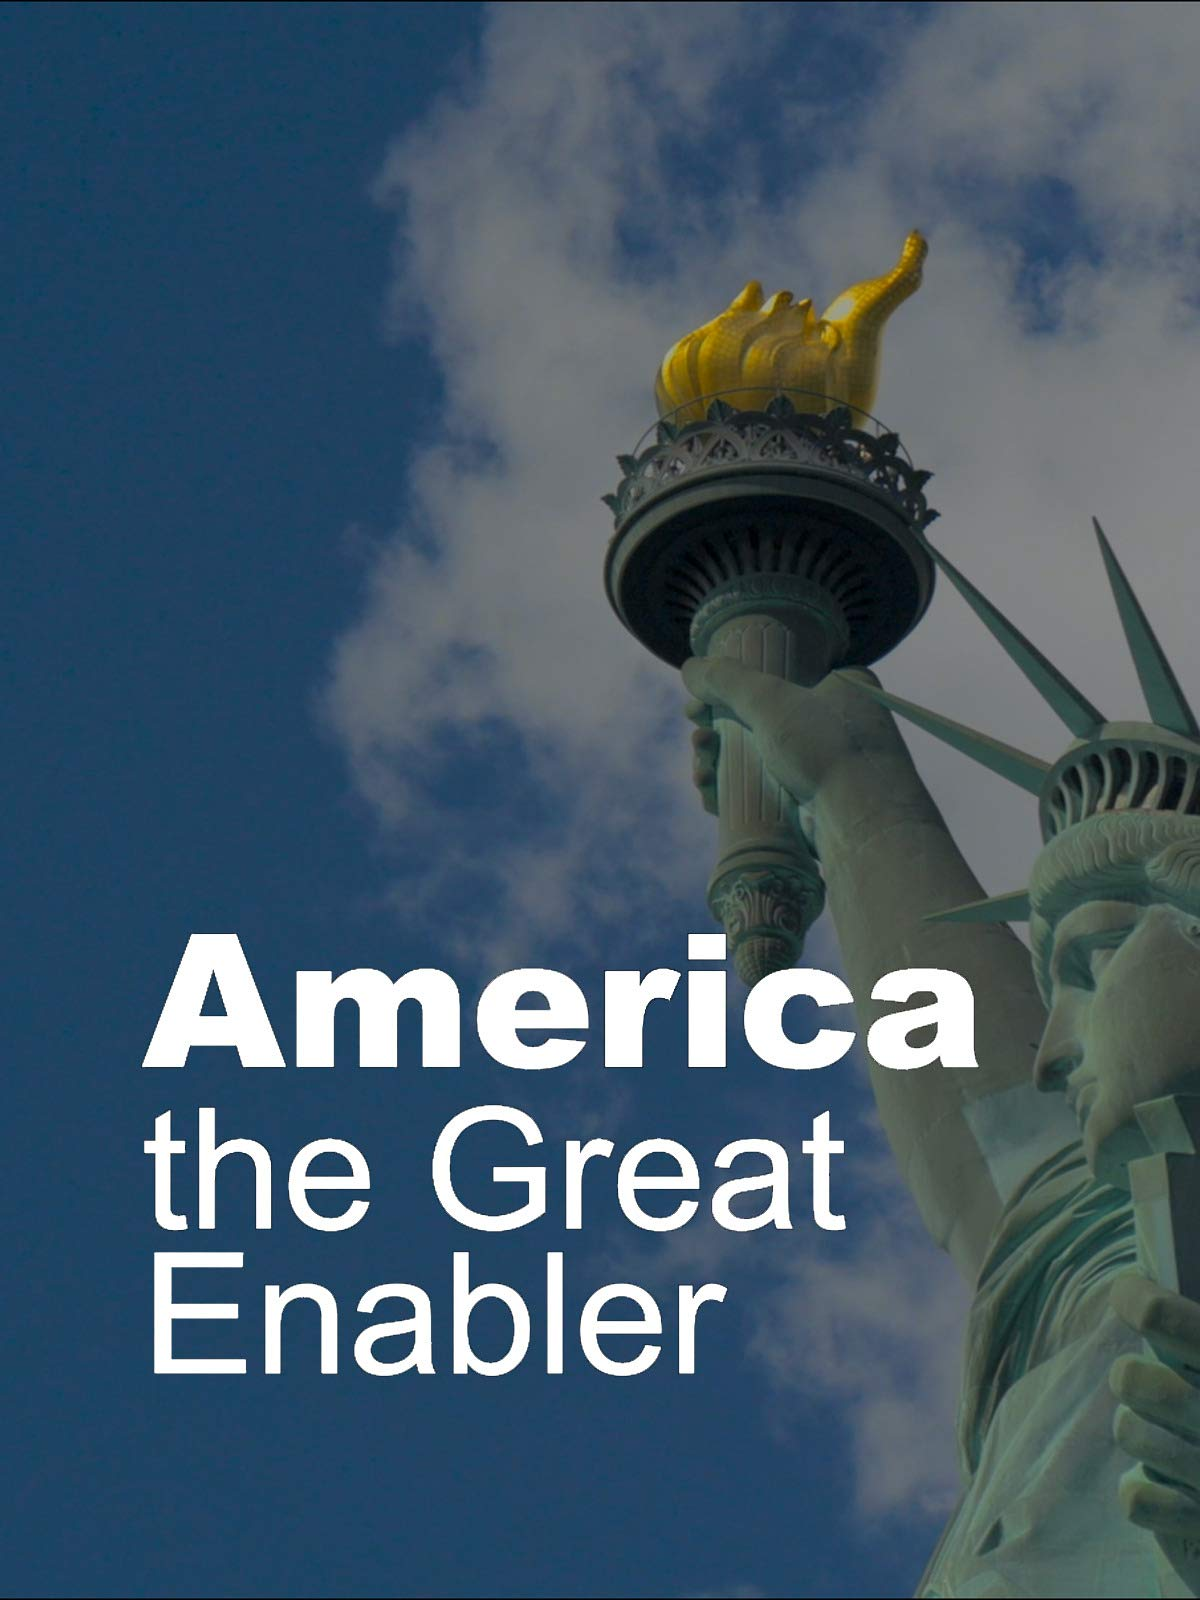 America the Great Enabler